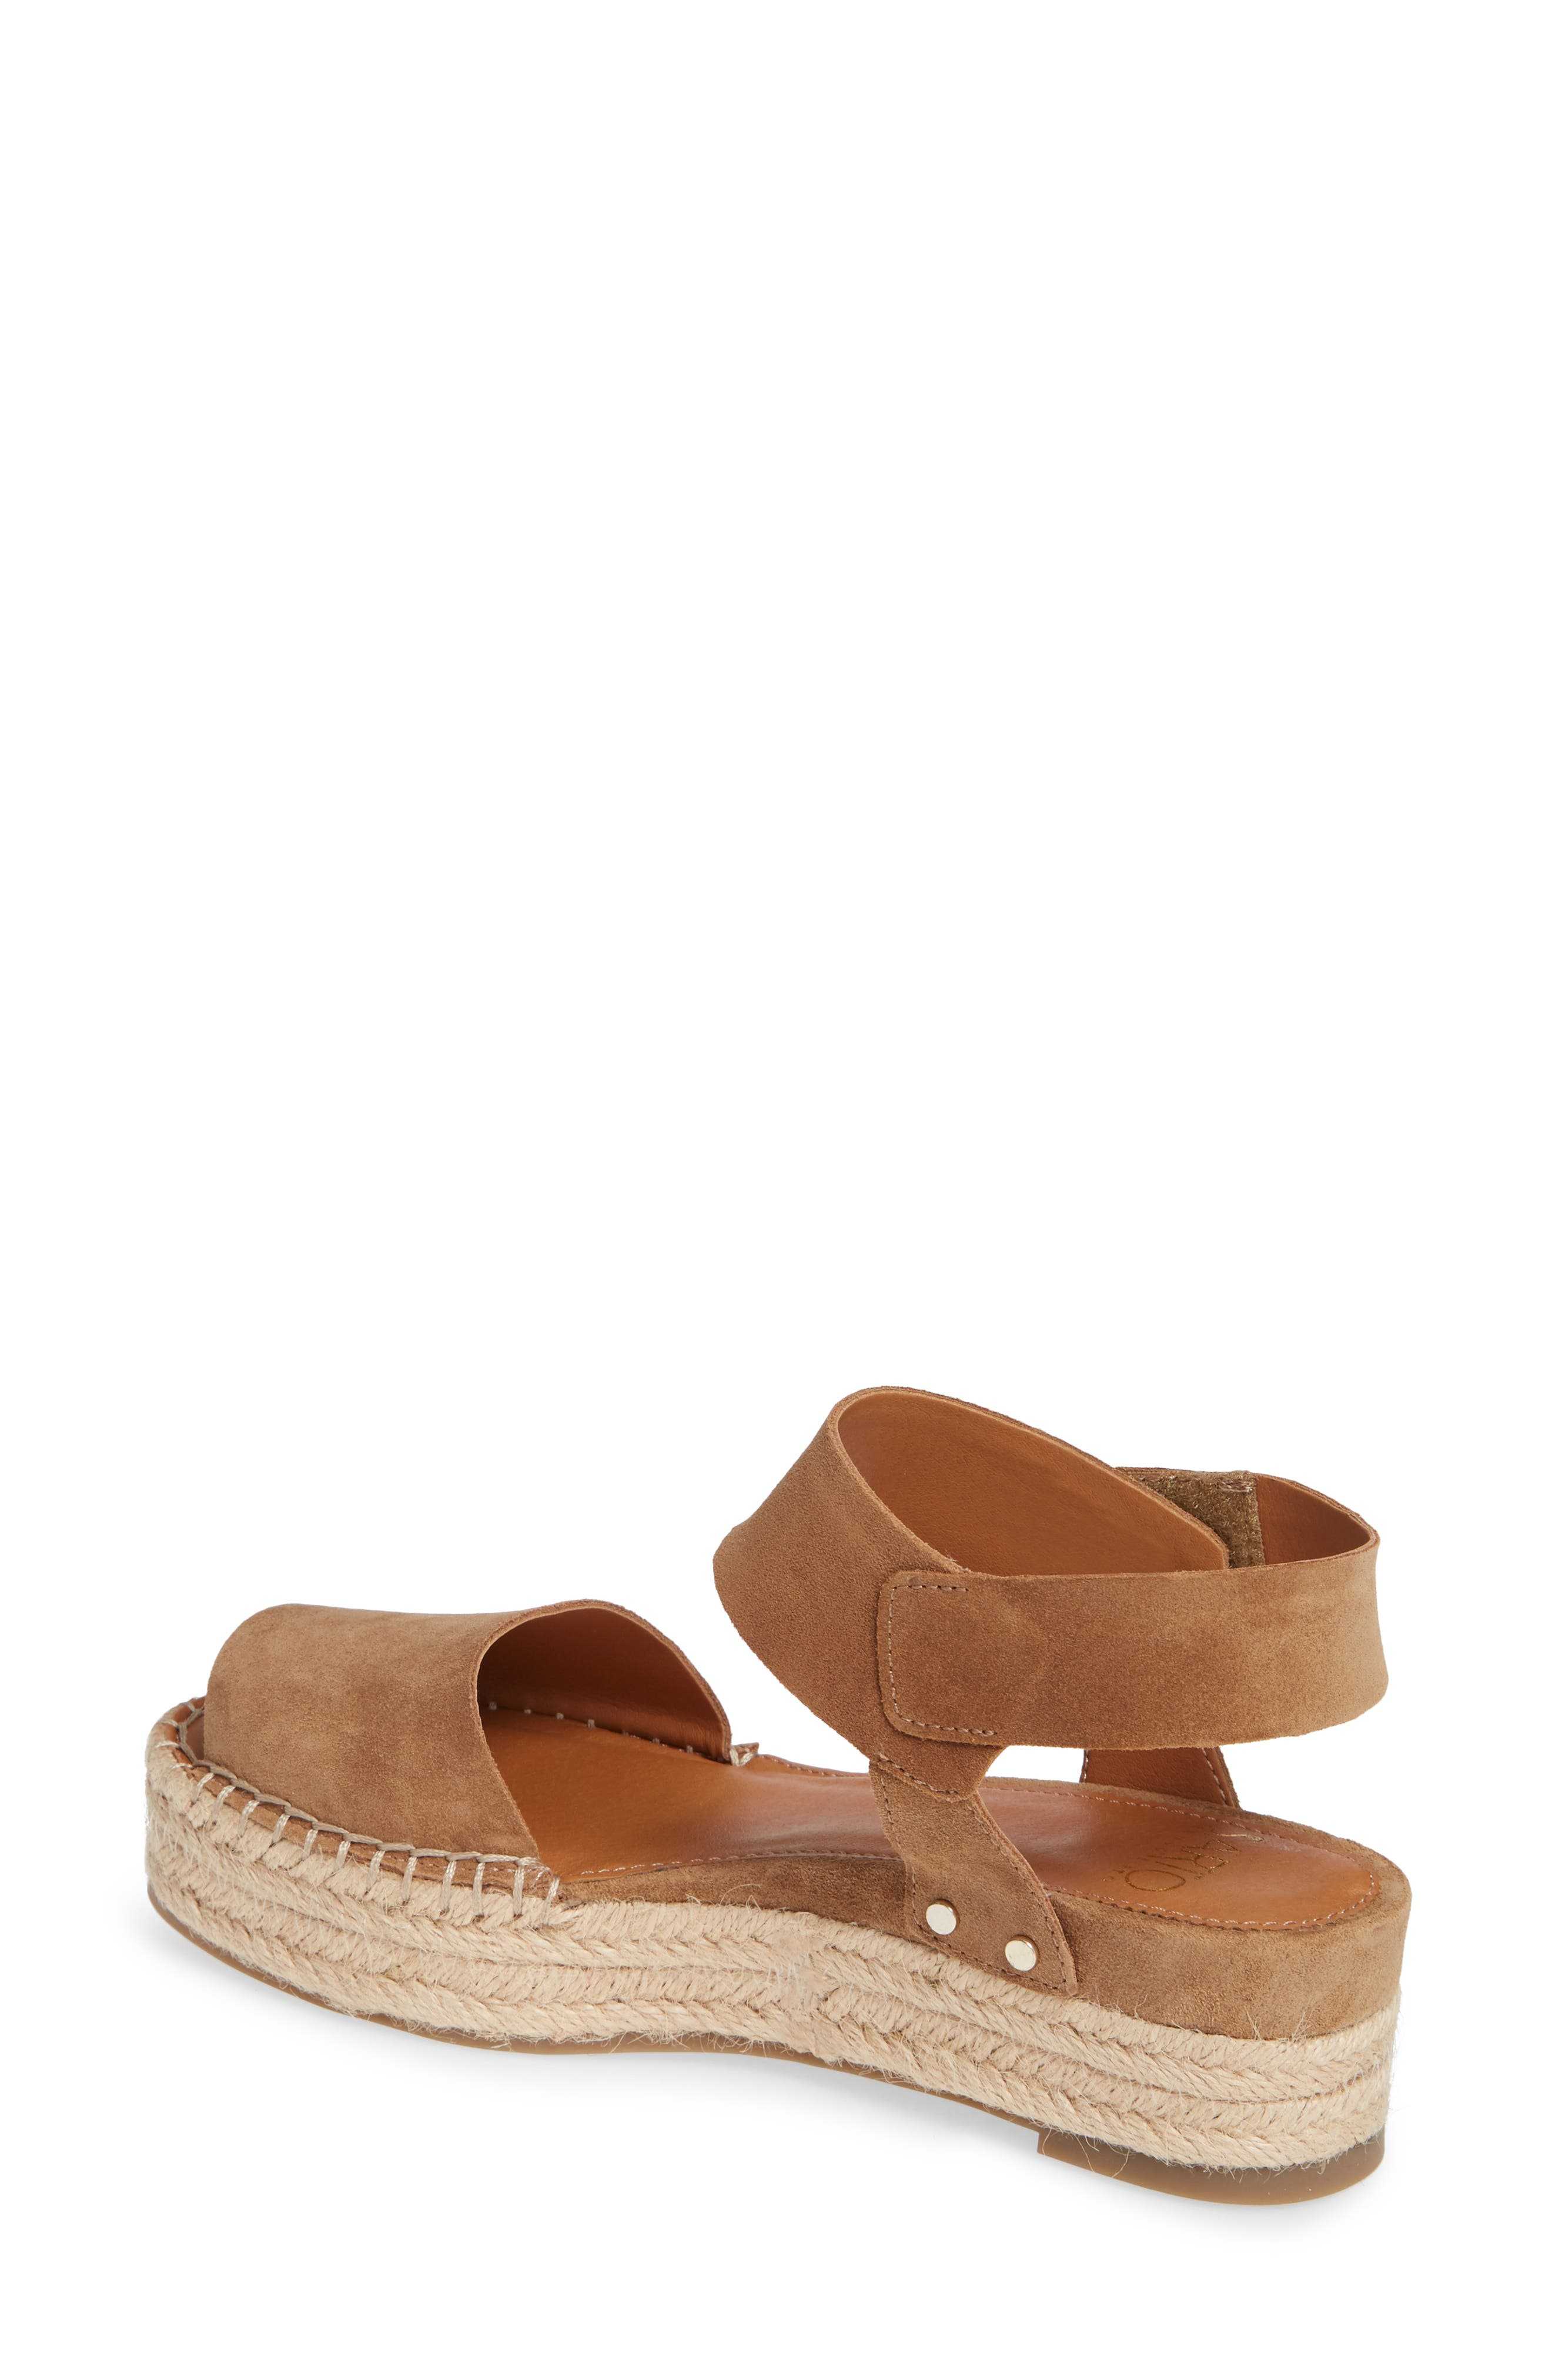 Oak Platform Wedge Espadrille,                             Alternate thumbnail 2, color,                             Toasted Barley Suede